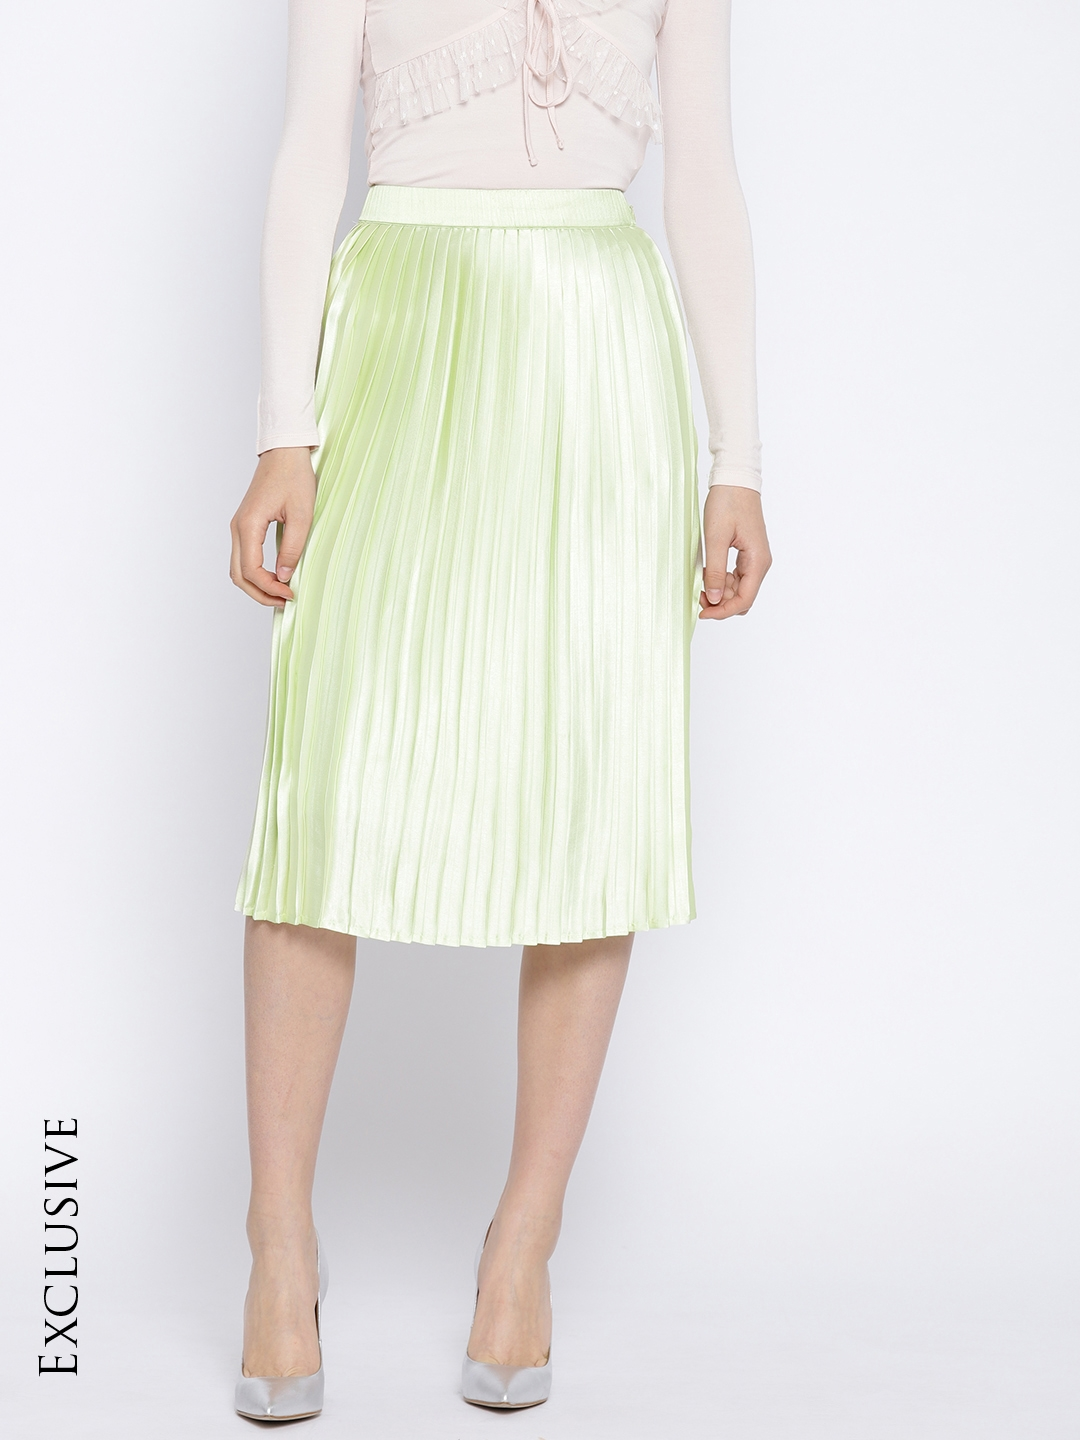 3bedee3ded Buy Leo Sansini Green Accordion Pleat Midi Flared Skirt - Skirts for ...